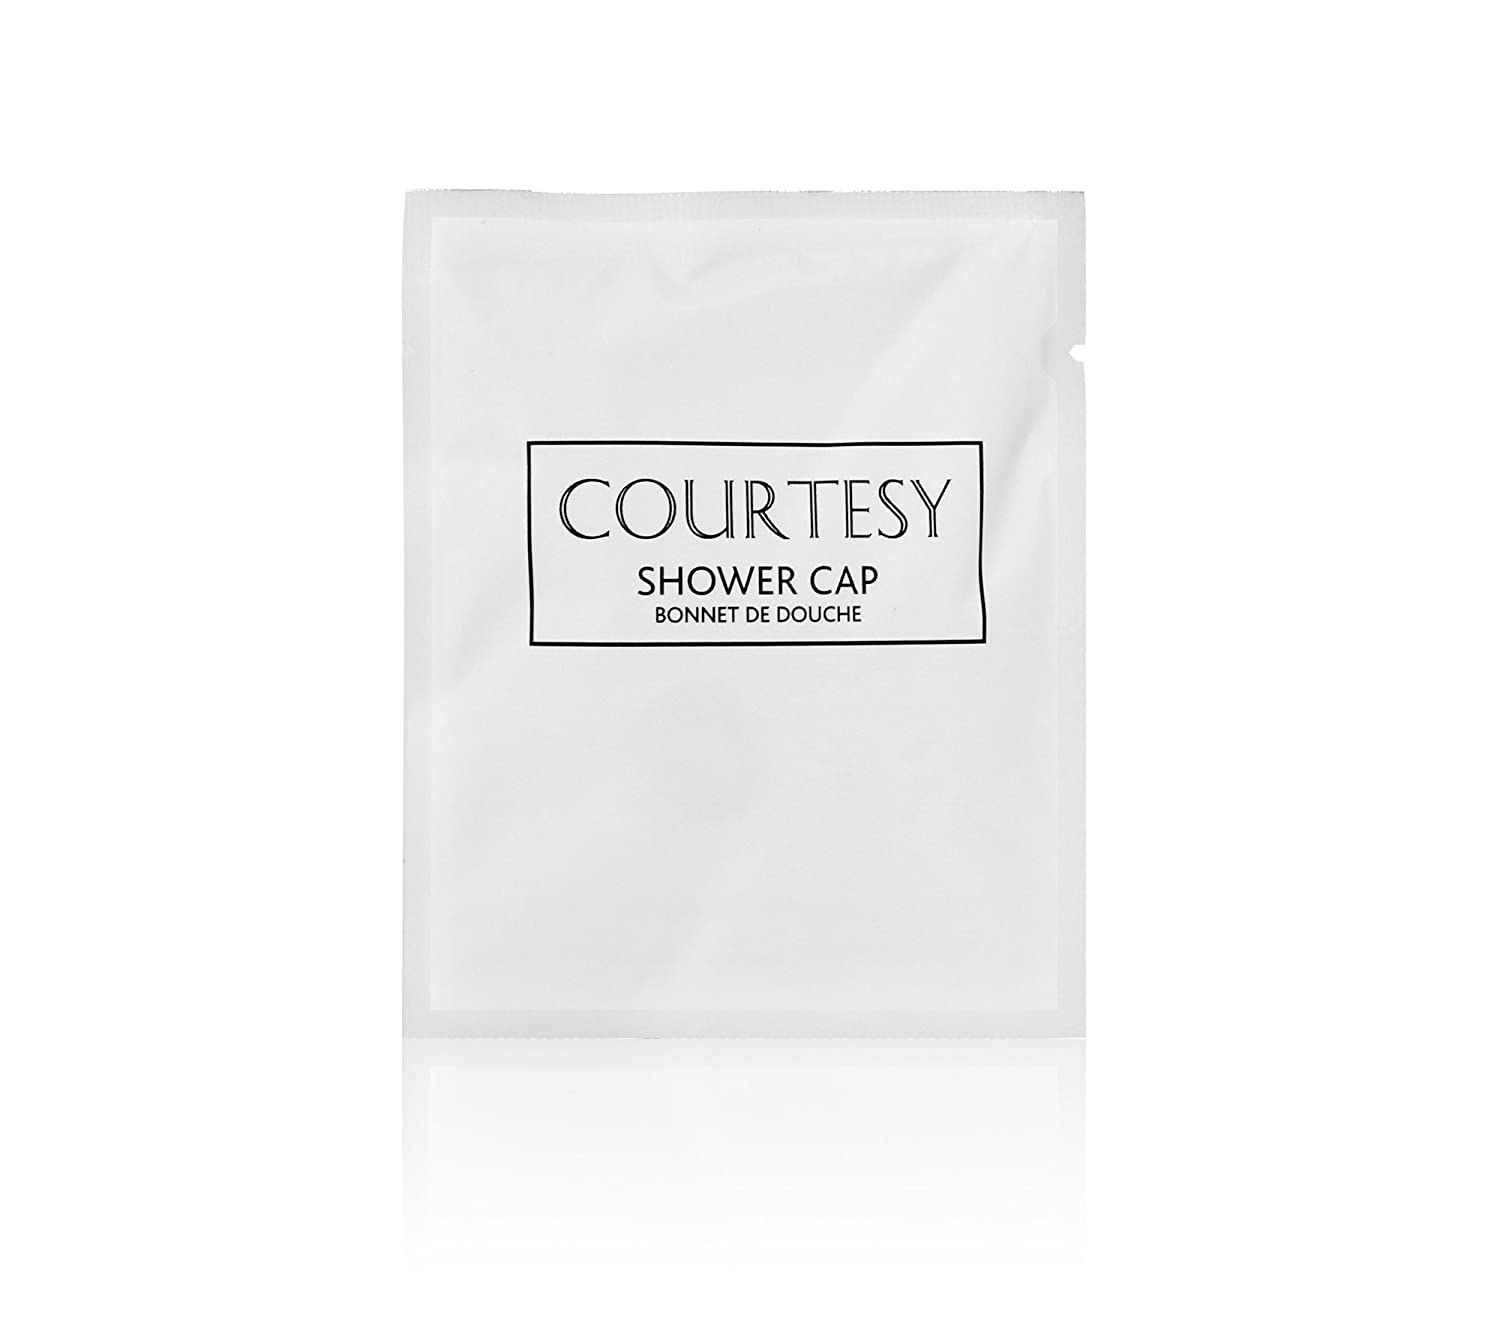 Courtesy Disposable Shower Cap, Hotel B&B Guest Travel - Pack of 100